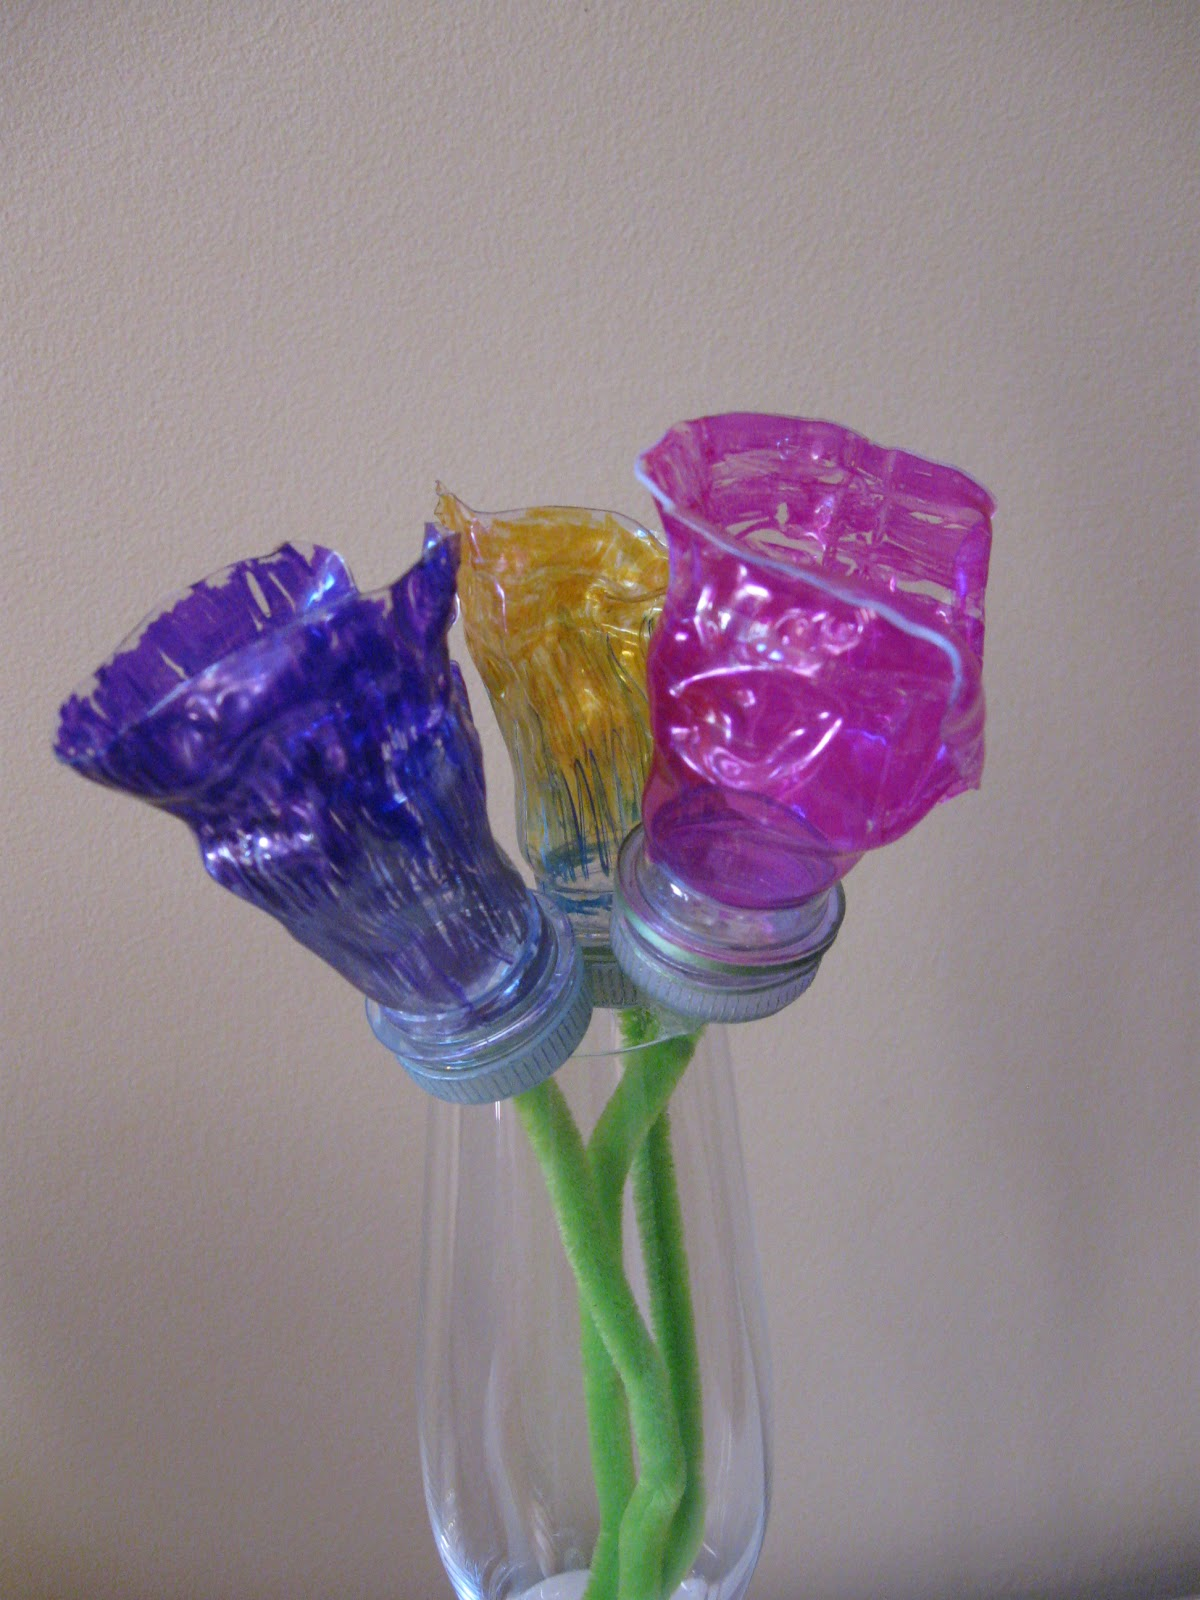 Water Bottle Recycling Ideas Of Craft Klatch Recycle Water Bottles And Turn Them Into